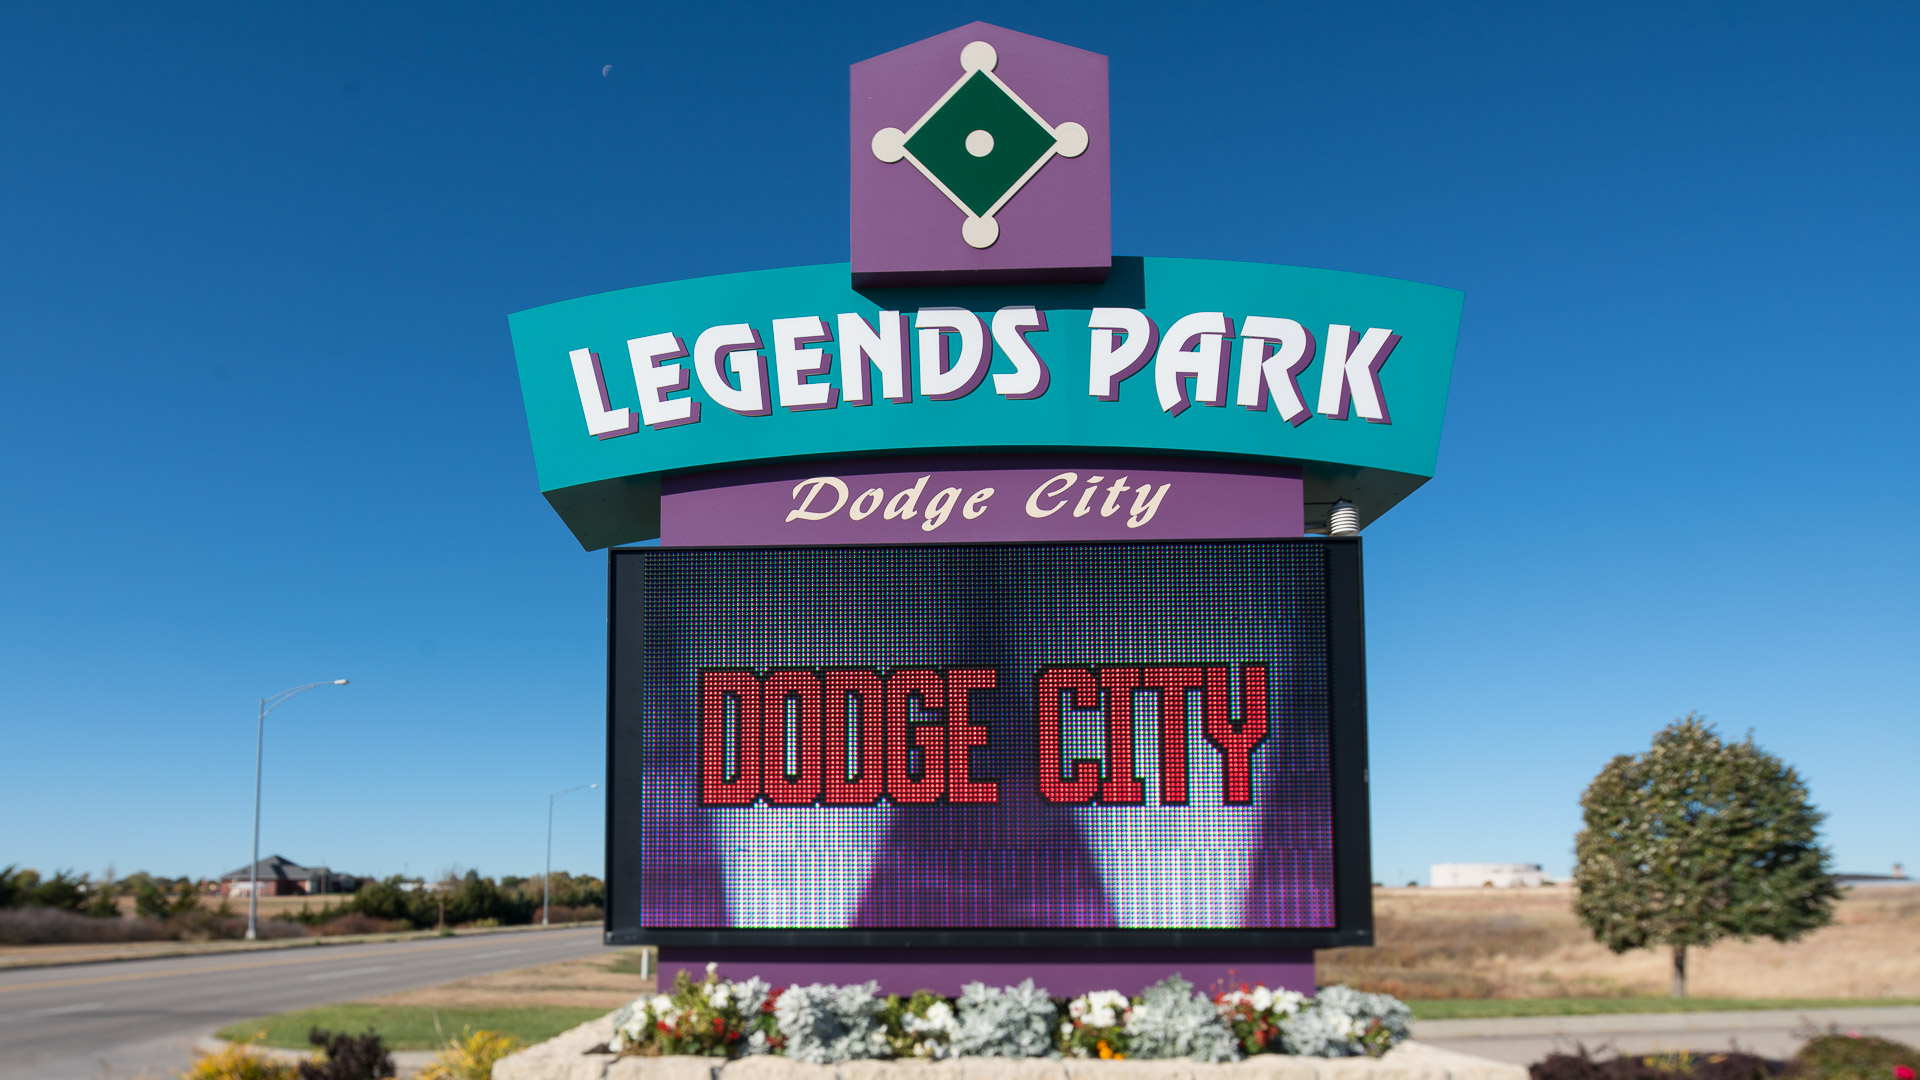 legends-park-message-center-sign-dodge-city-kansas-01319.jpg